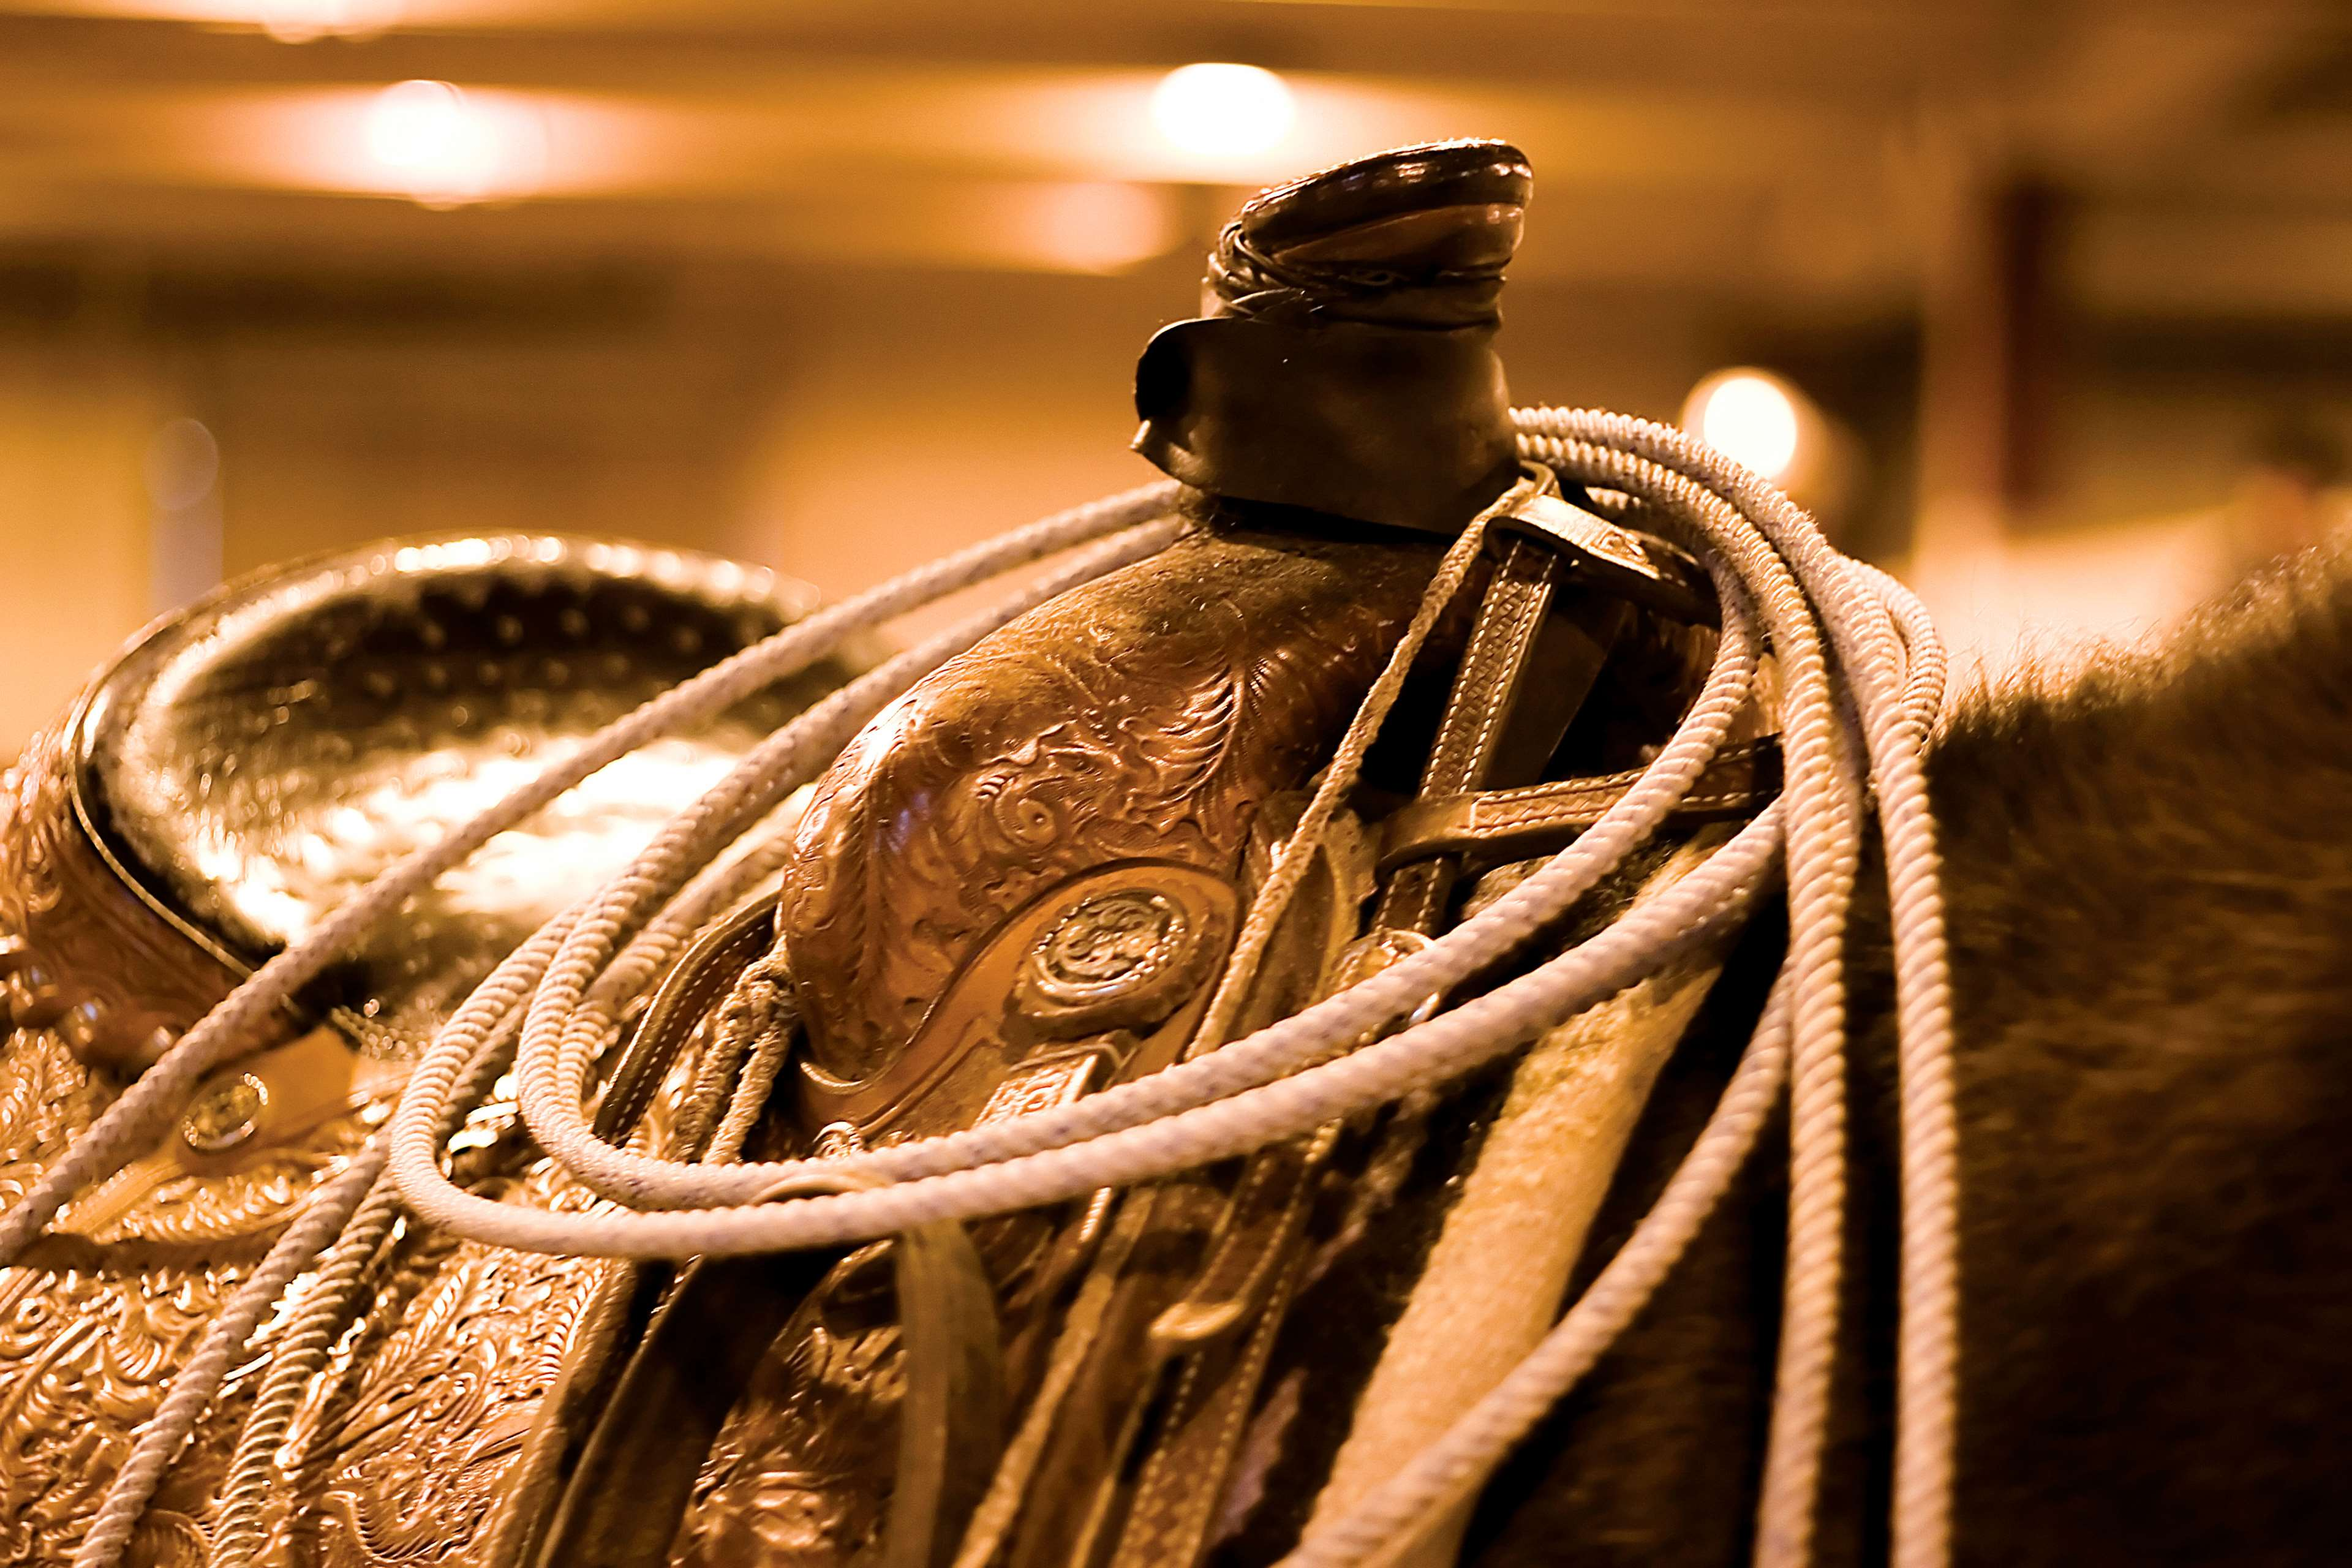 Saddle gear on a horse at stock show